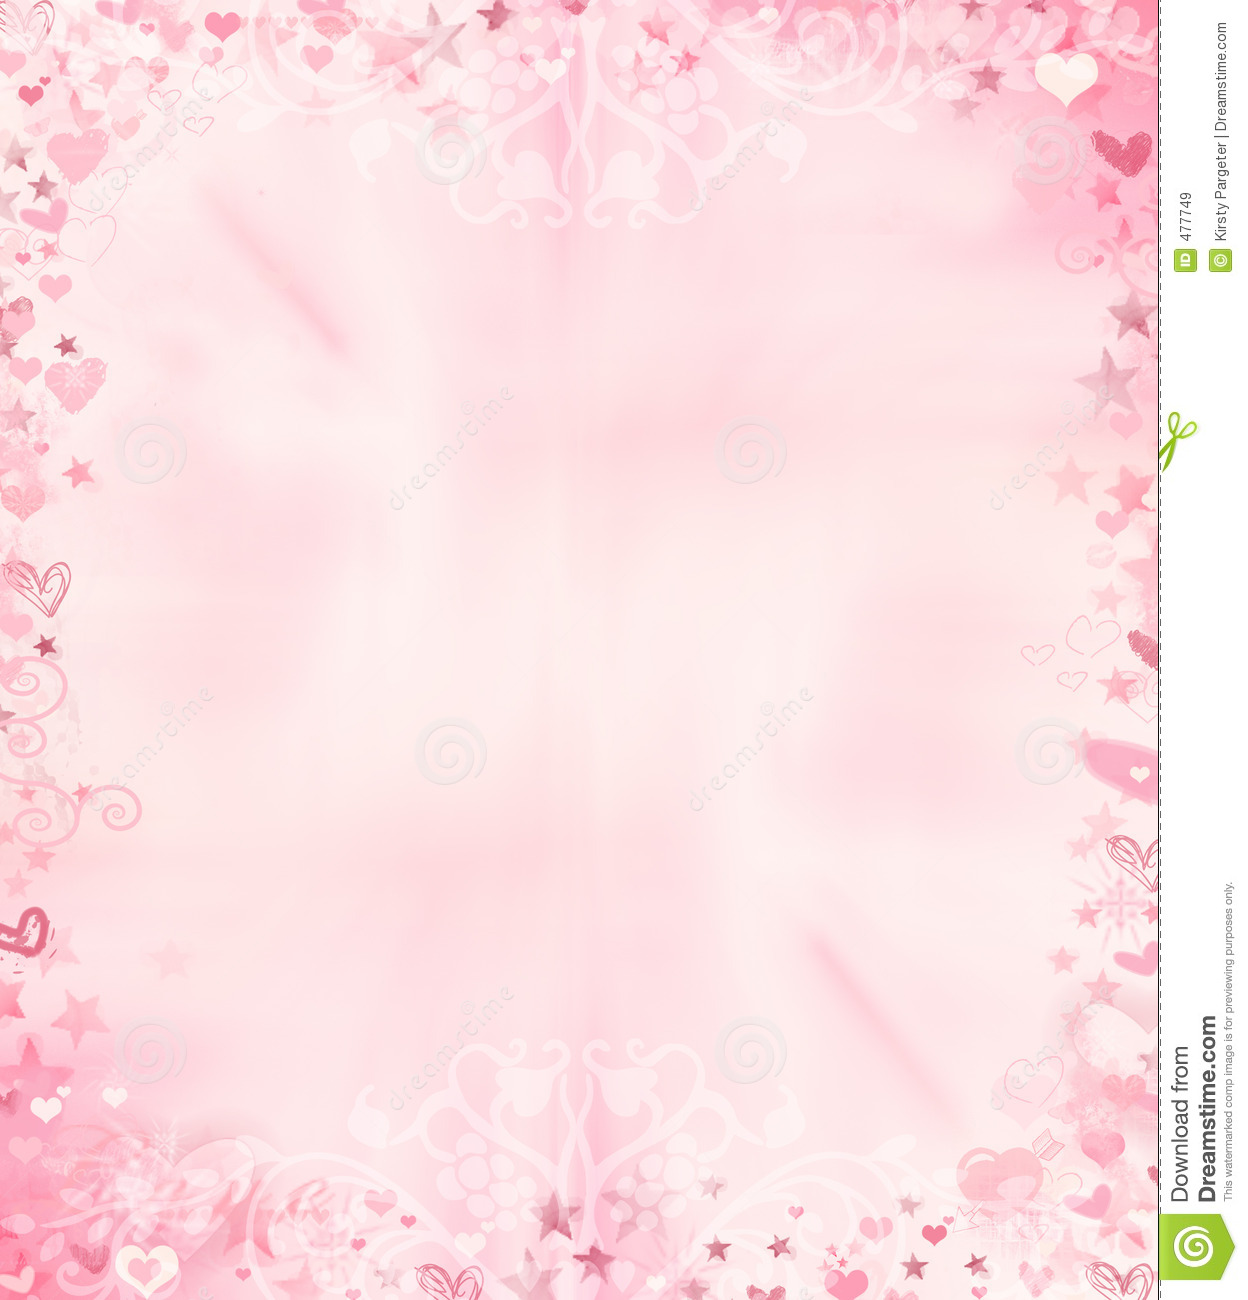 Valentines Background Royalty Free Stock Images - Image: 477749